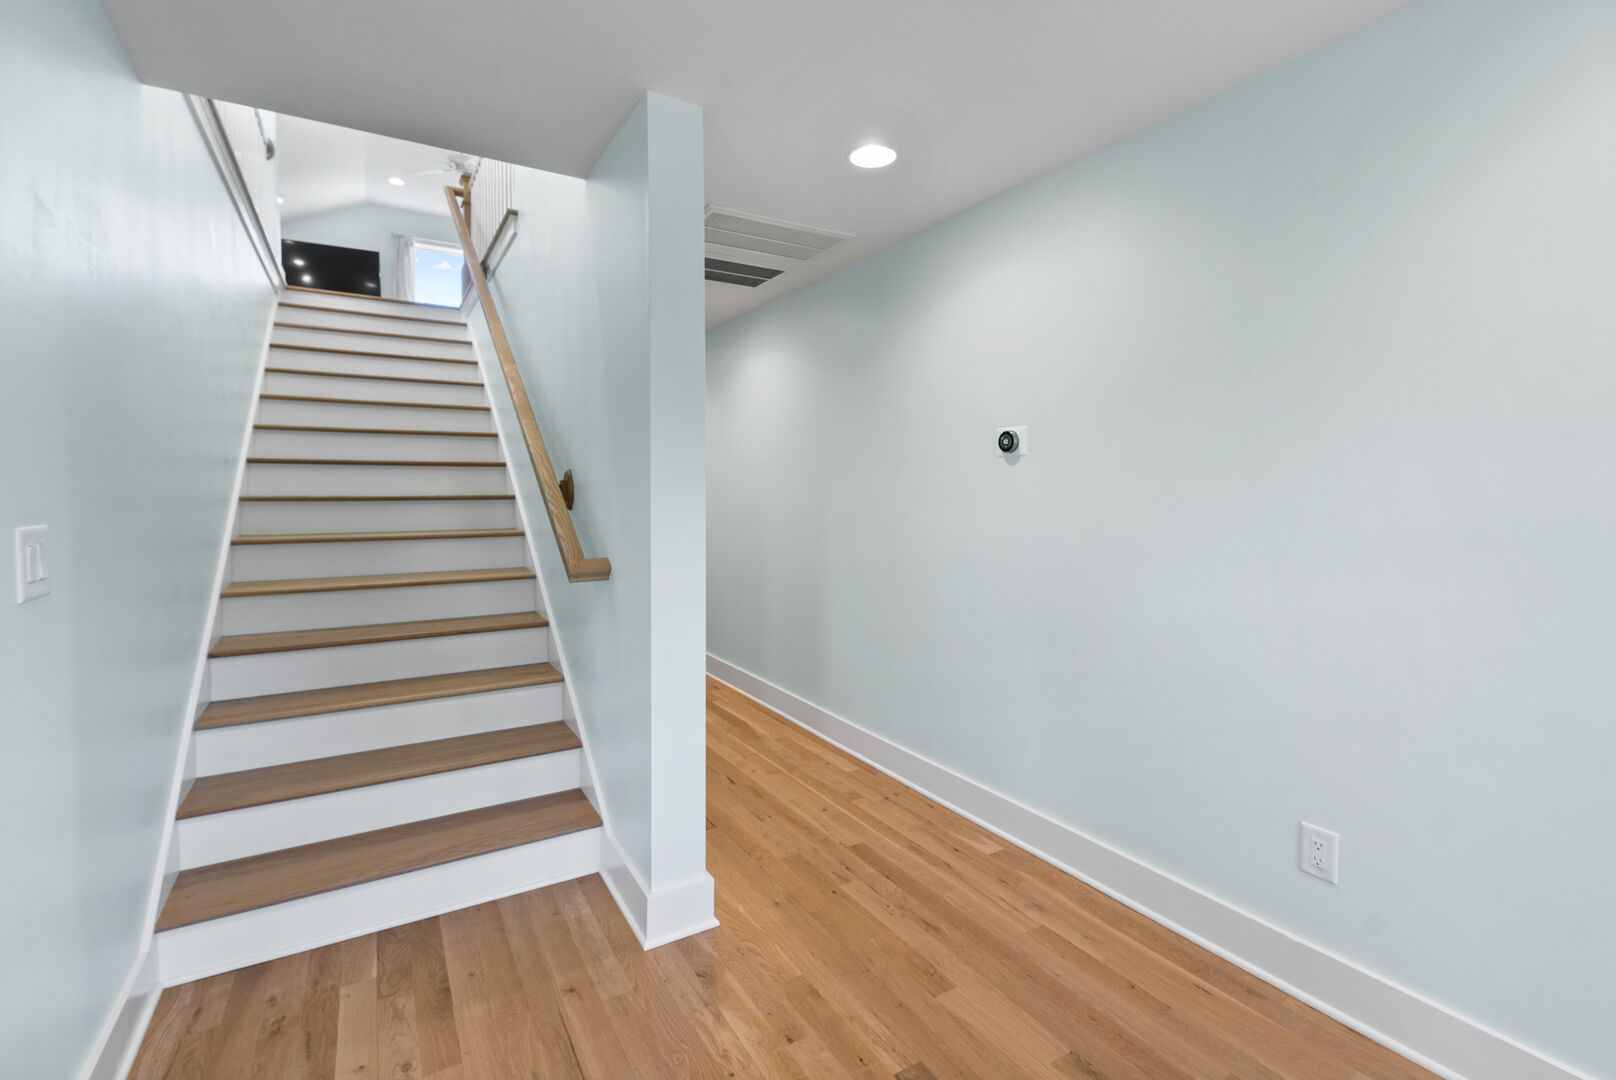 Stairs Leading to Third Floor